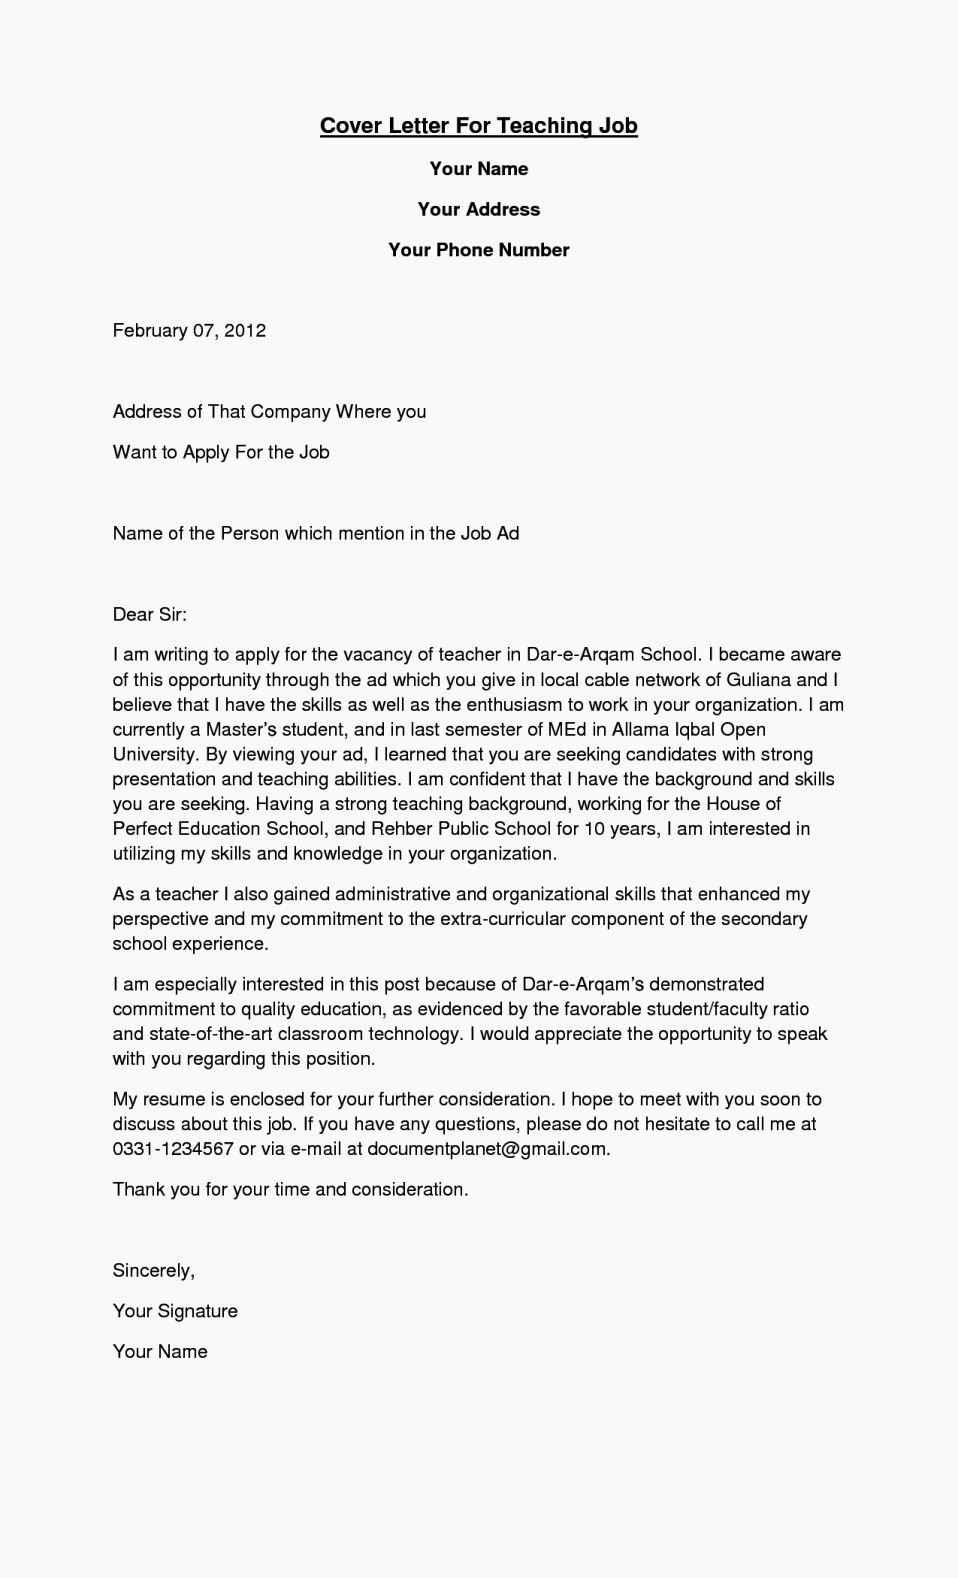 Cover Letter for Teaching Job with No Experience